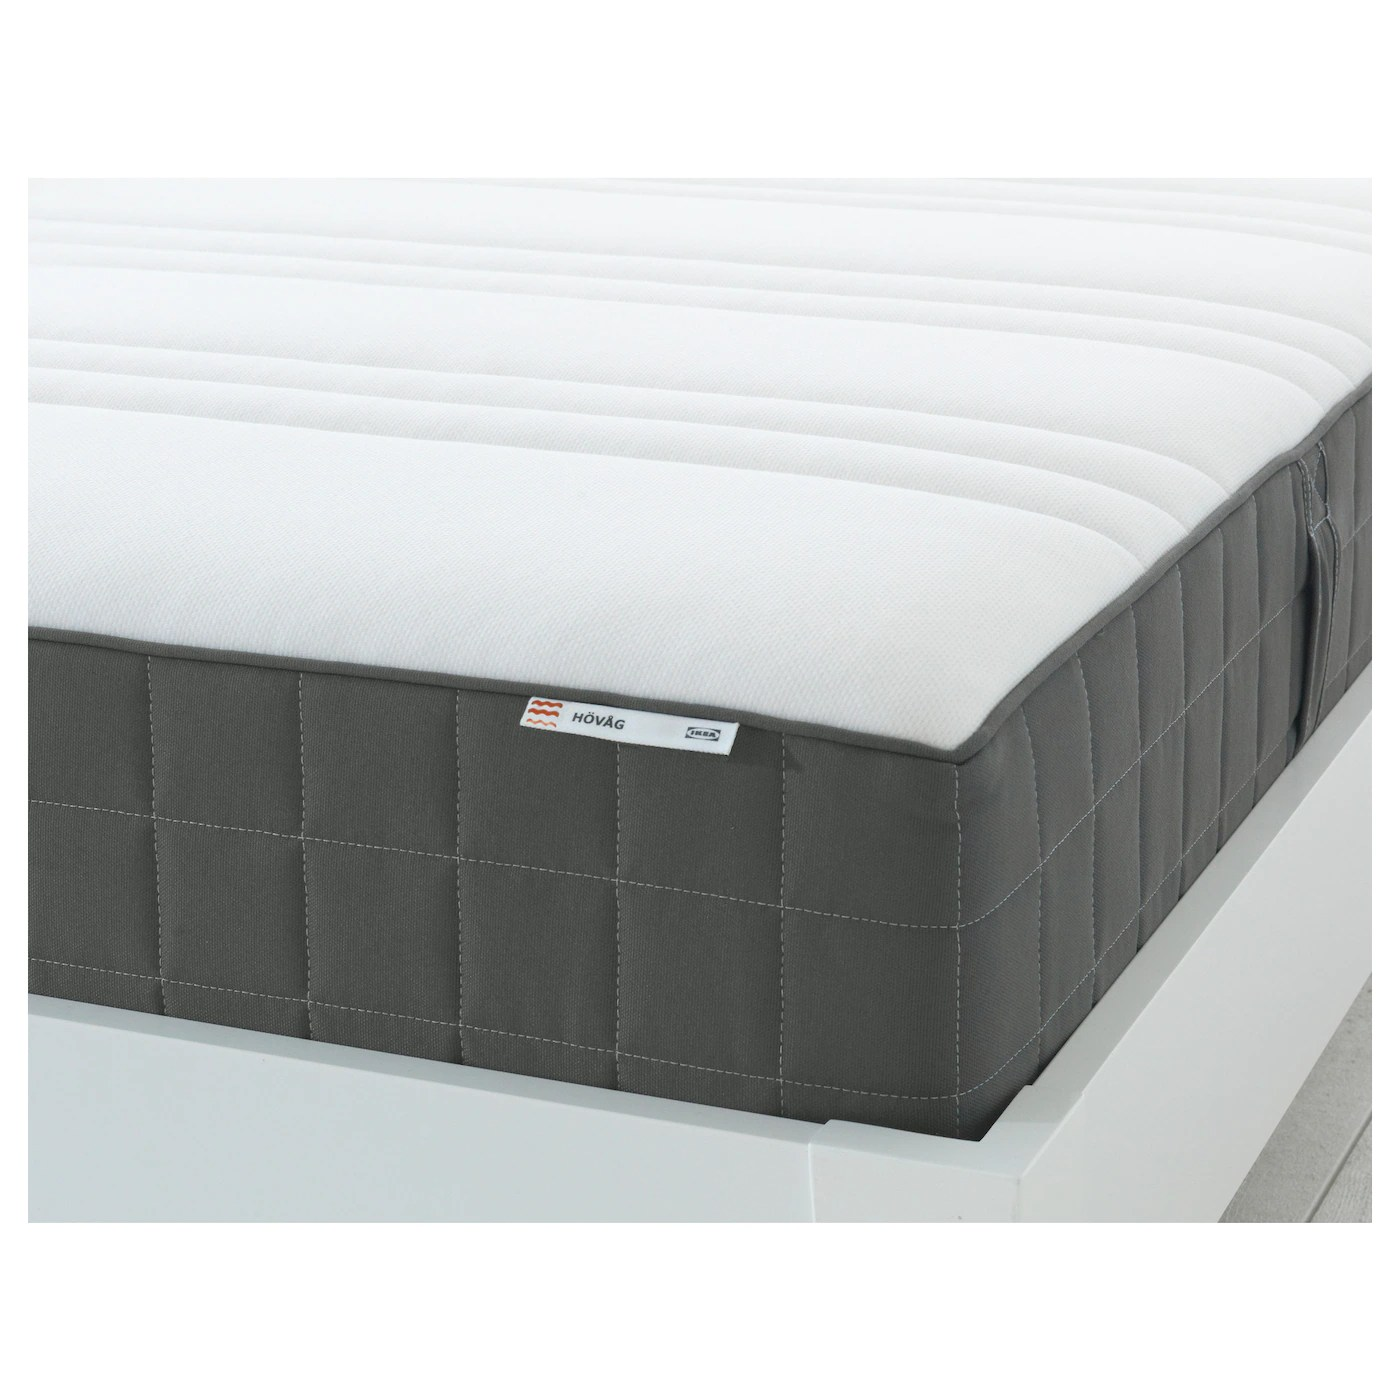 Ikea Boxspring 220 Cm HÖvÅg Pocket Sprung Mattress Medium Firm Dark Grey